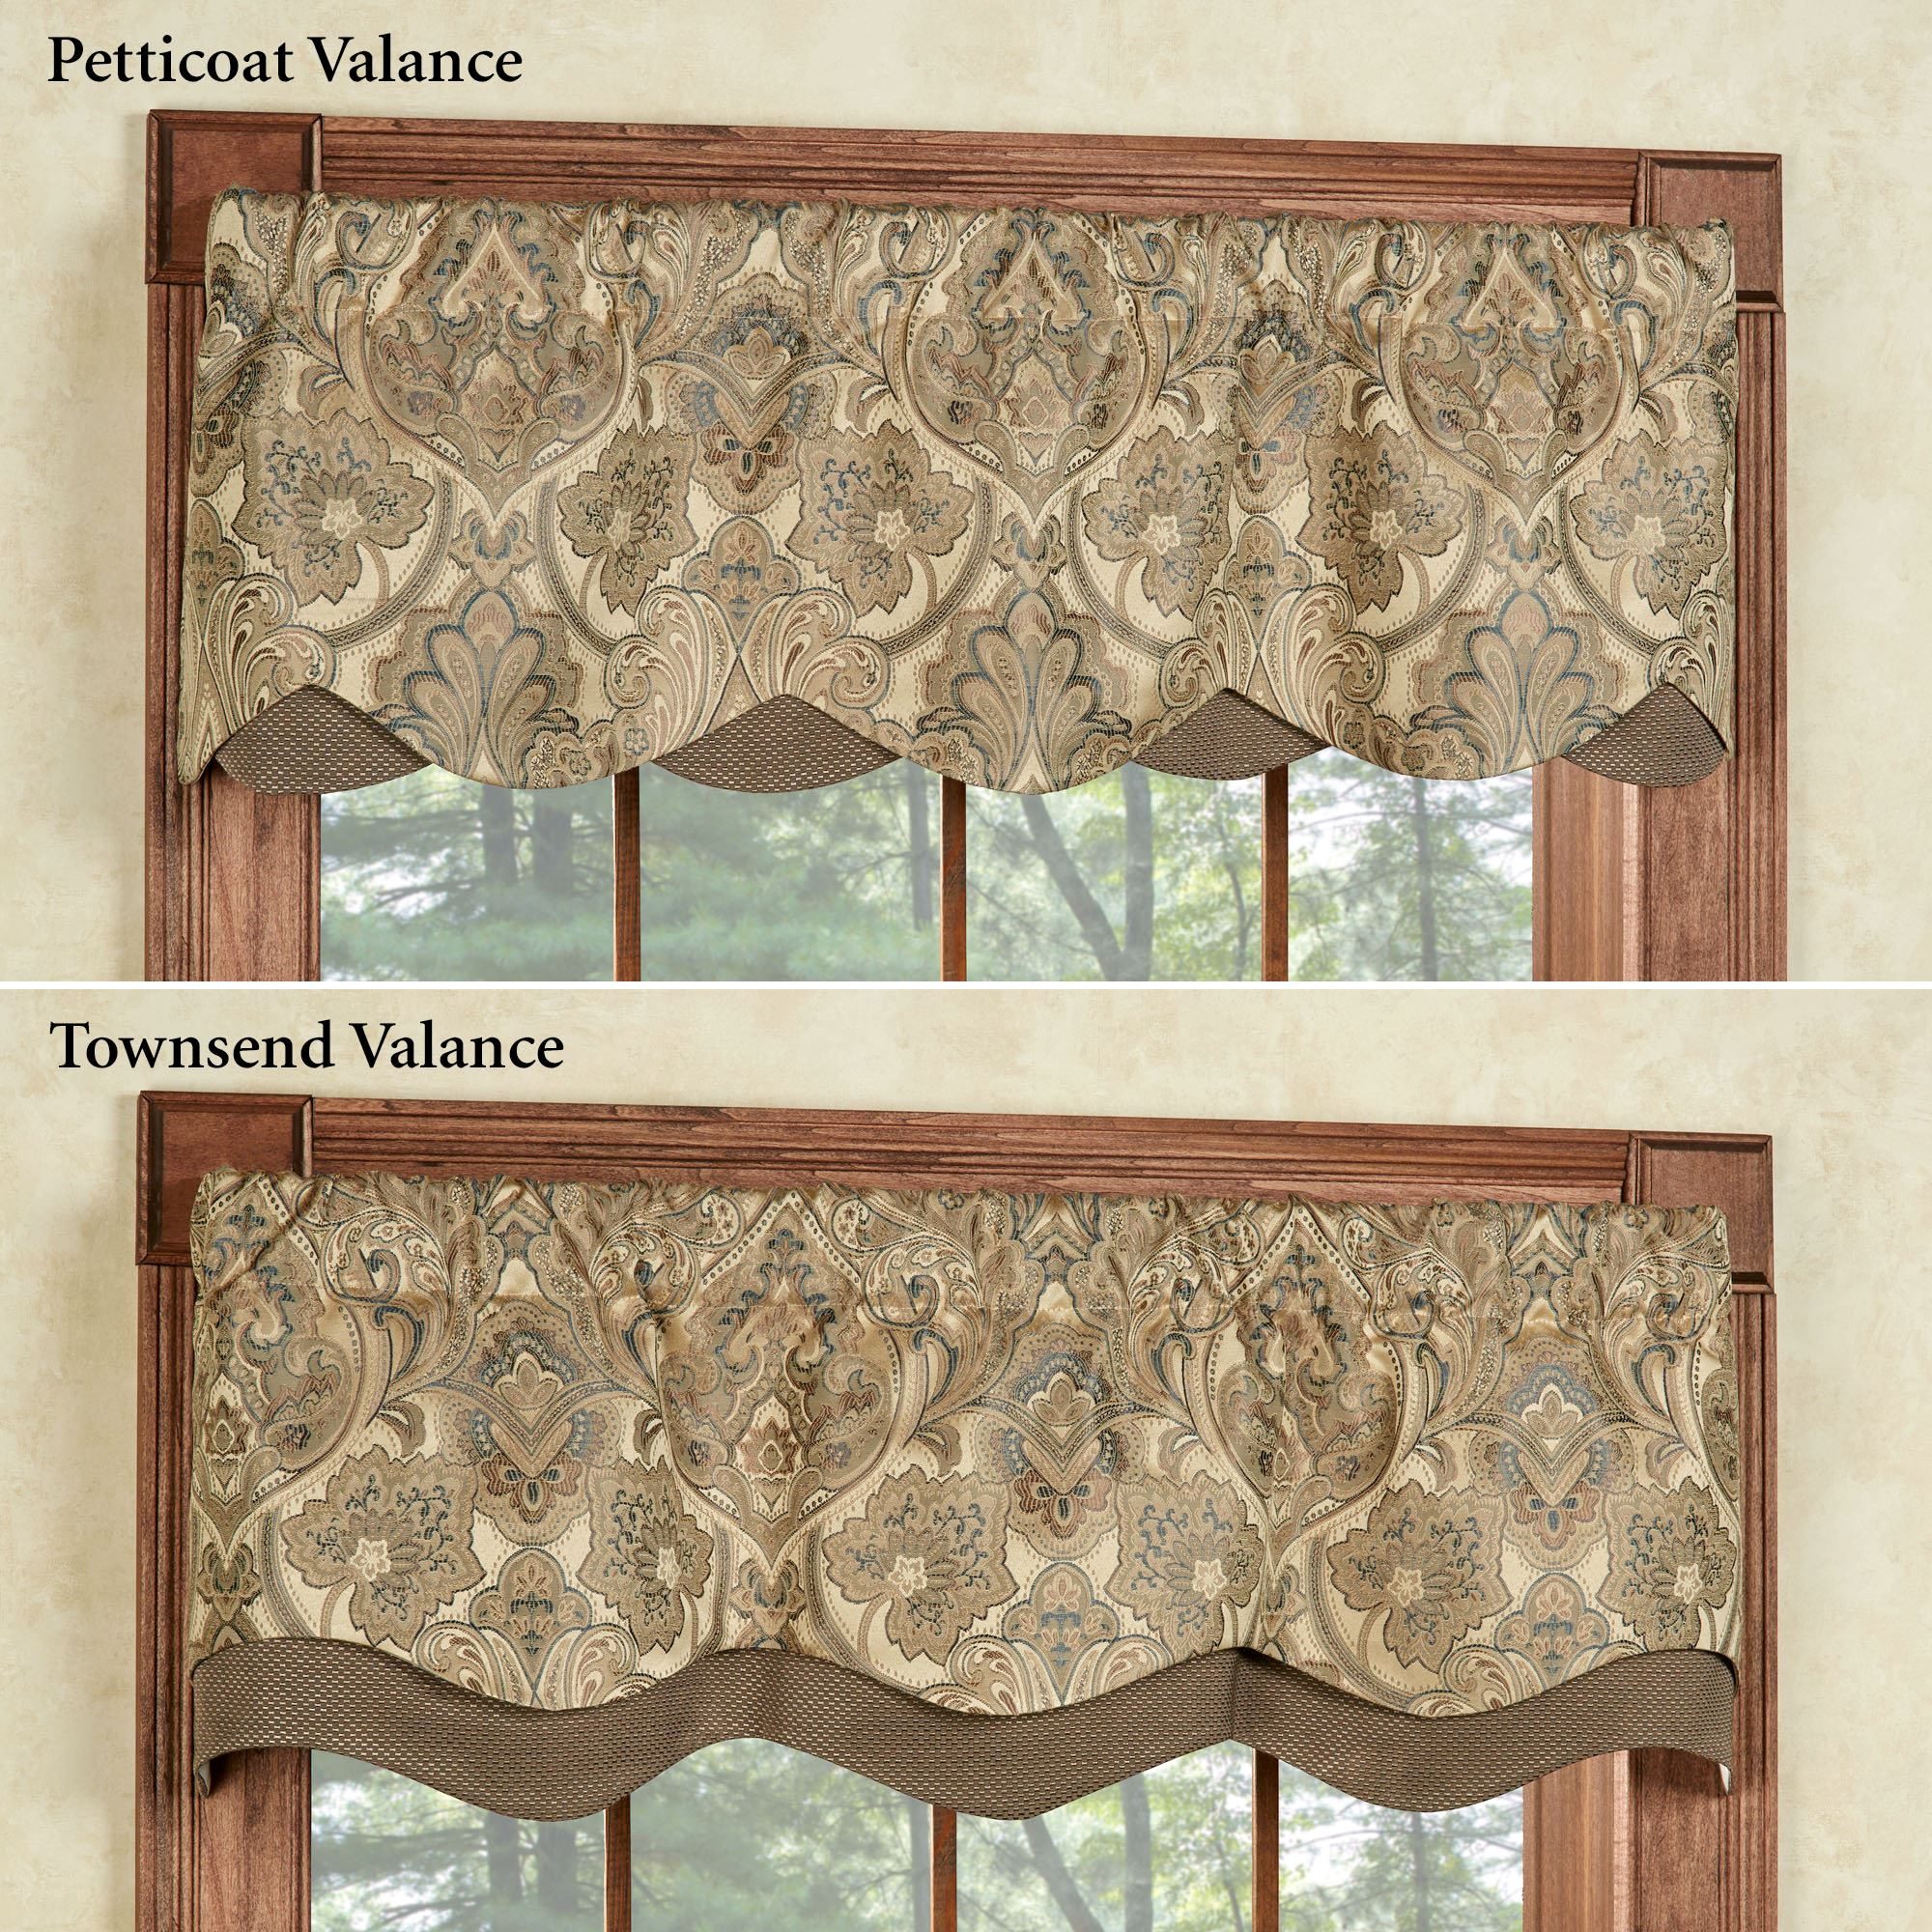 valances the valance room of living beauty as dressing for windows an window curtains coverings ornamentation